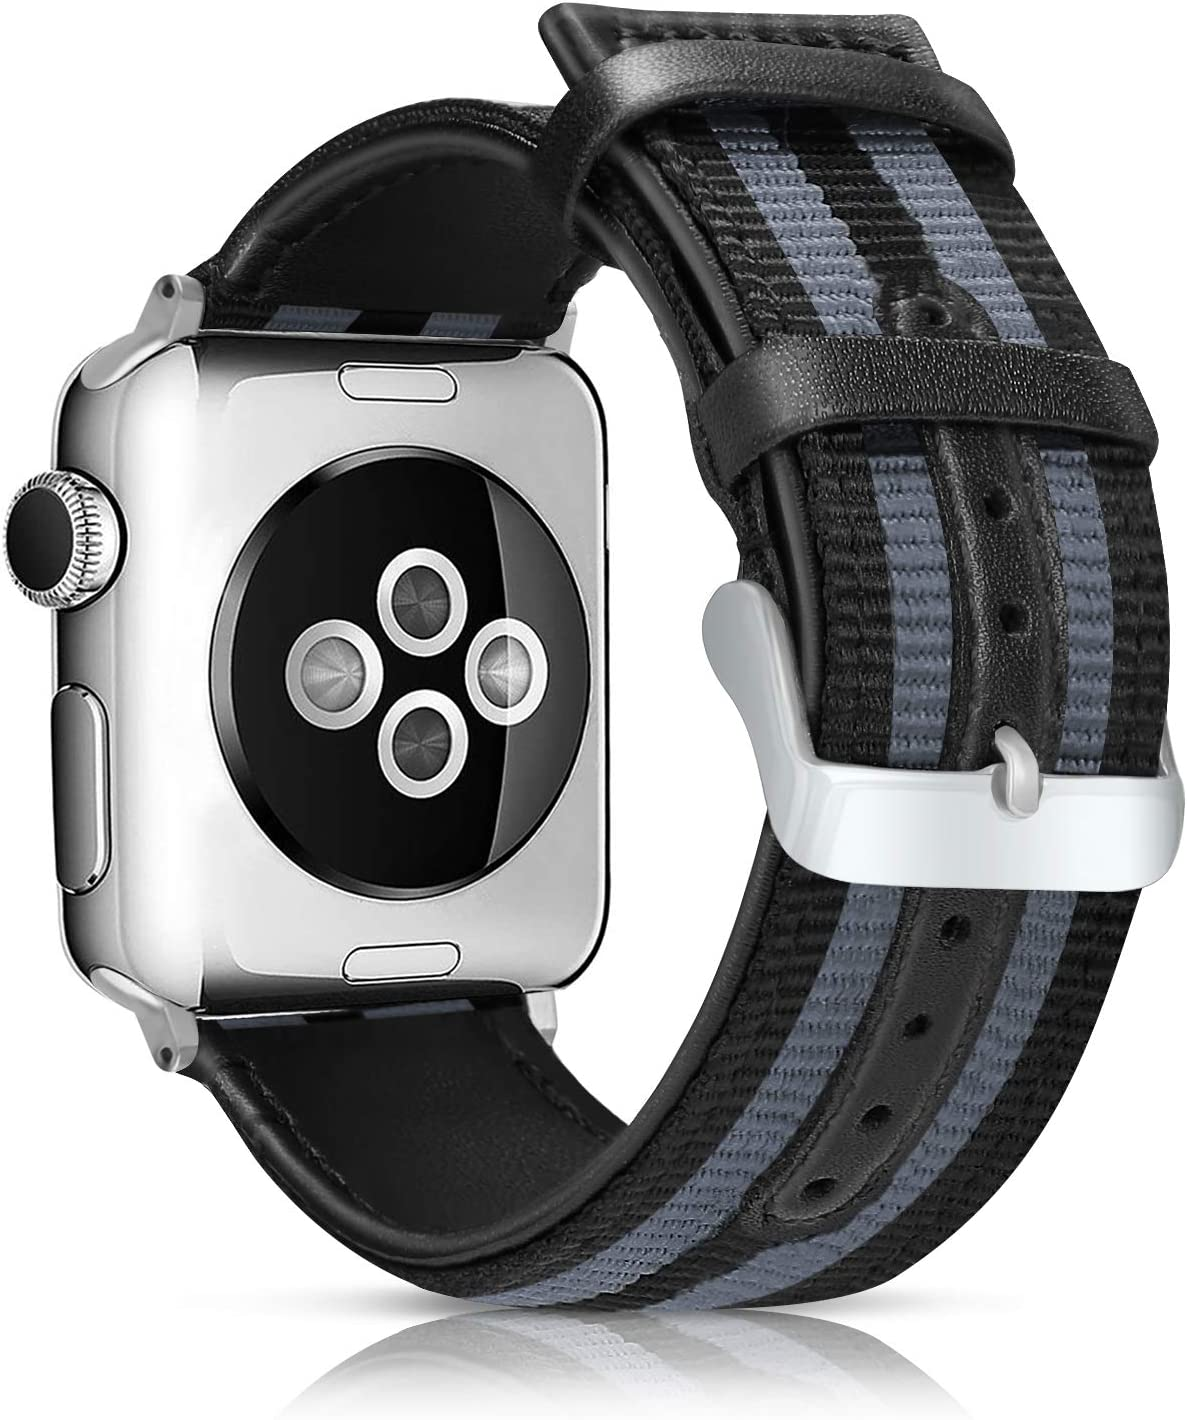 LBYZCAS Sport Wrist Band Compatible for Apple Watch 38MM 40MM,Soft and Breathable Nylon with Genuine Leather Replacement Band Strap Compatible for iWatch Series 5 4 3 2 1 for Women Men